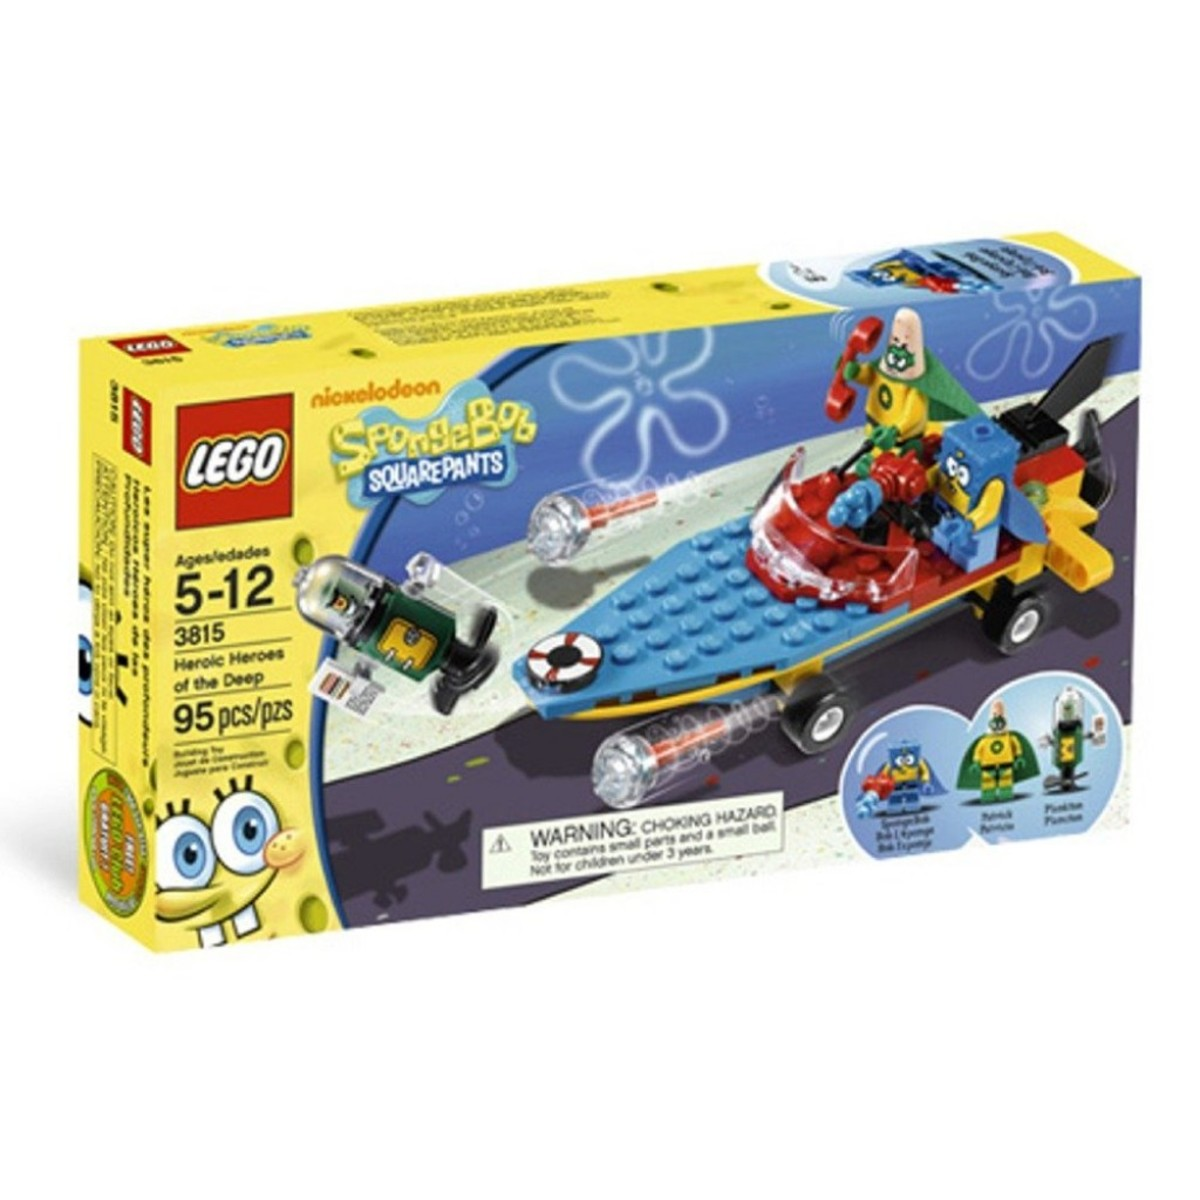 LEGO SpongeBob SquarePants Heroic Heroes Of The Deep 3815 Box